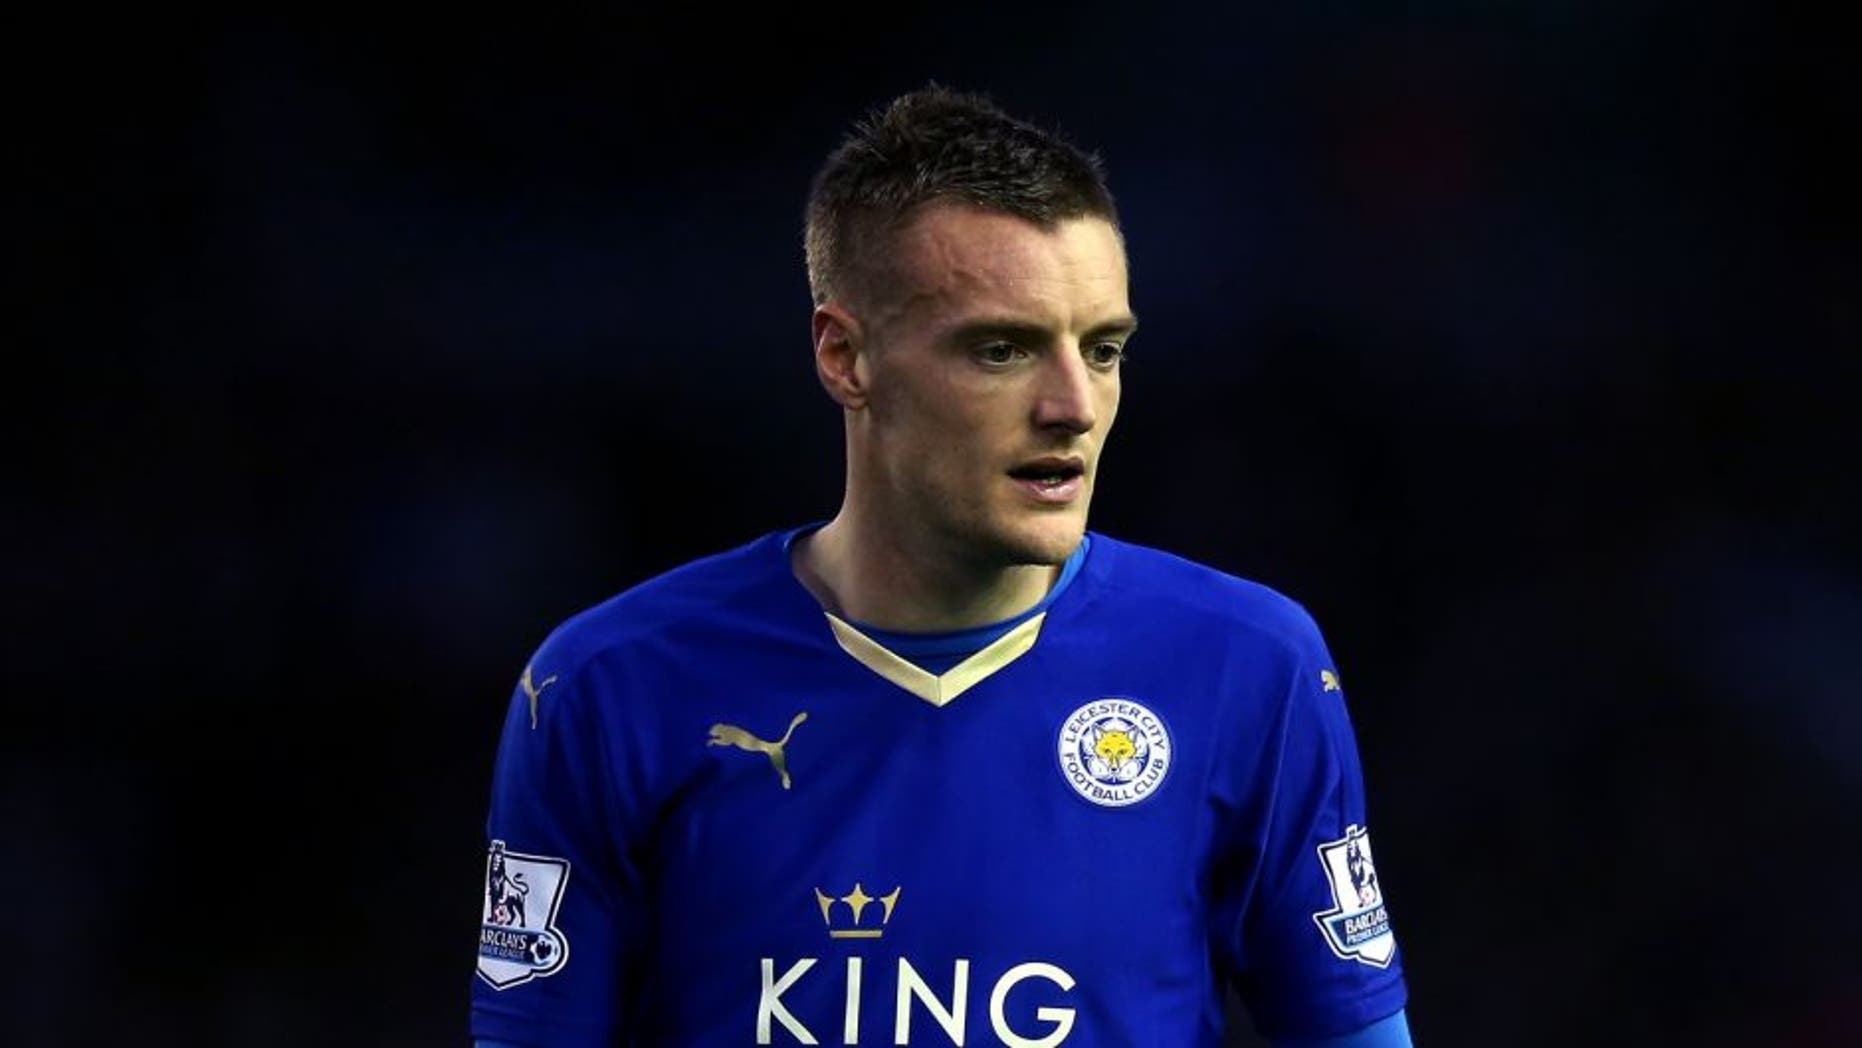 LIVERPOOL, ENGLAND - DECEMBER 26: Jamie Vardy of Leicester City looks on during the Barclays Premier League match between Liverpool and Leicester City at Anfield on December 26, 2015 in Liverpool, England. (Photo by Chris Brunskill/Getty Images)